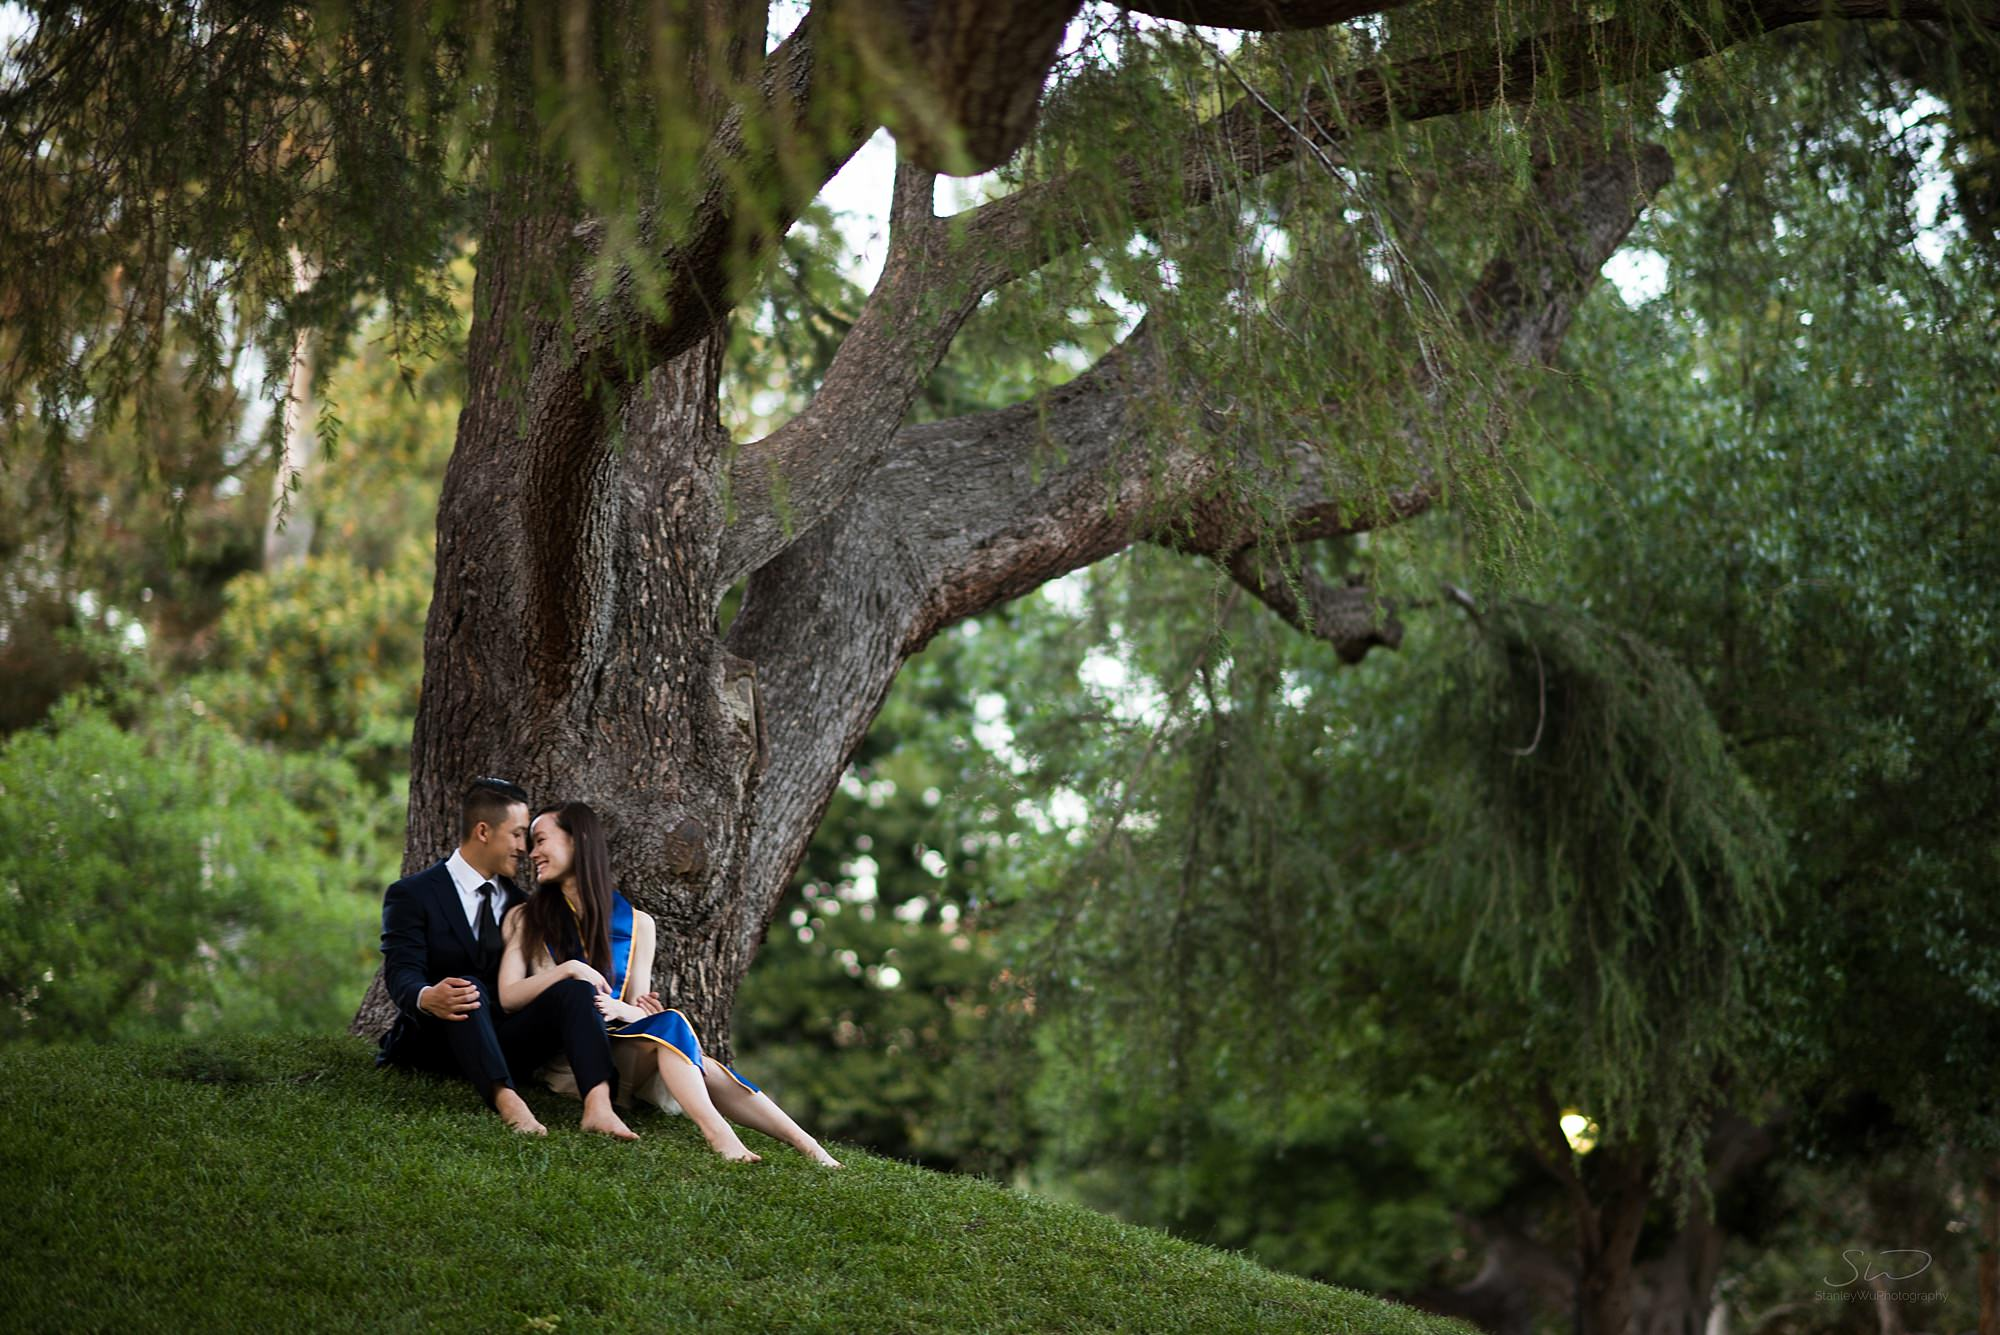 los angeles graduation senior portrait couple having a beautiful moment under a tree in a forest background at ucla